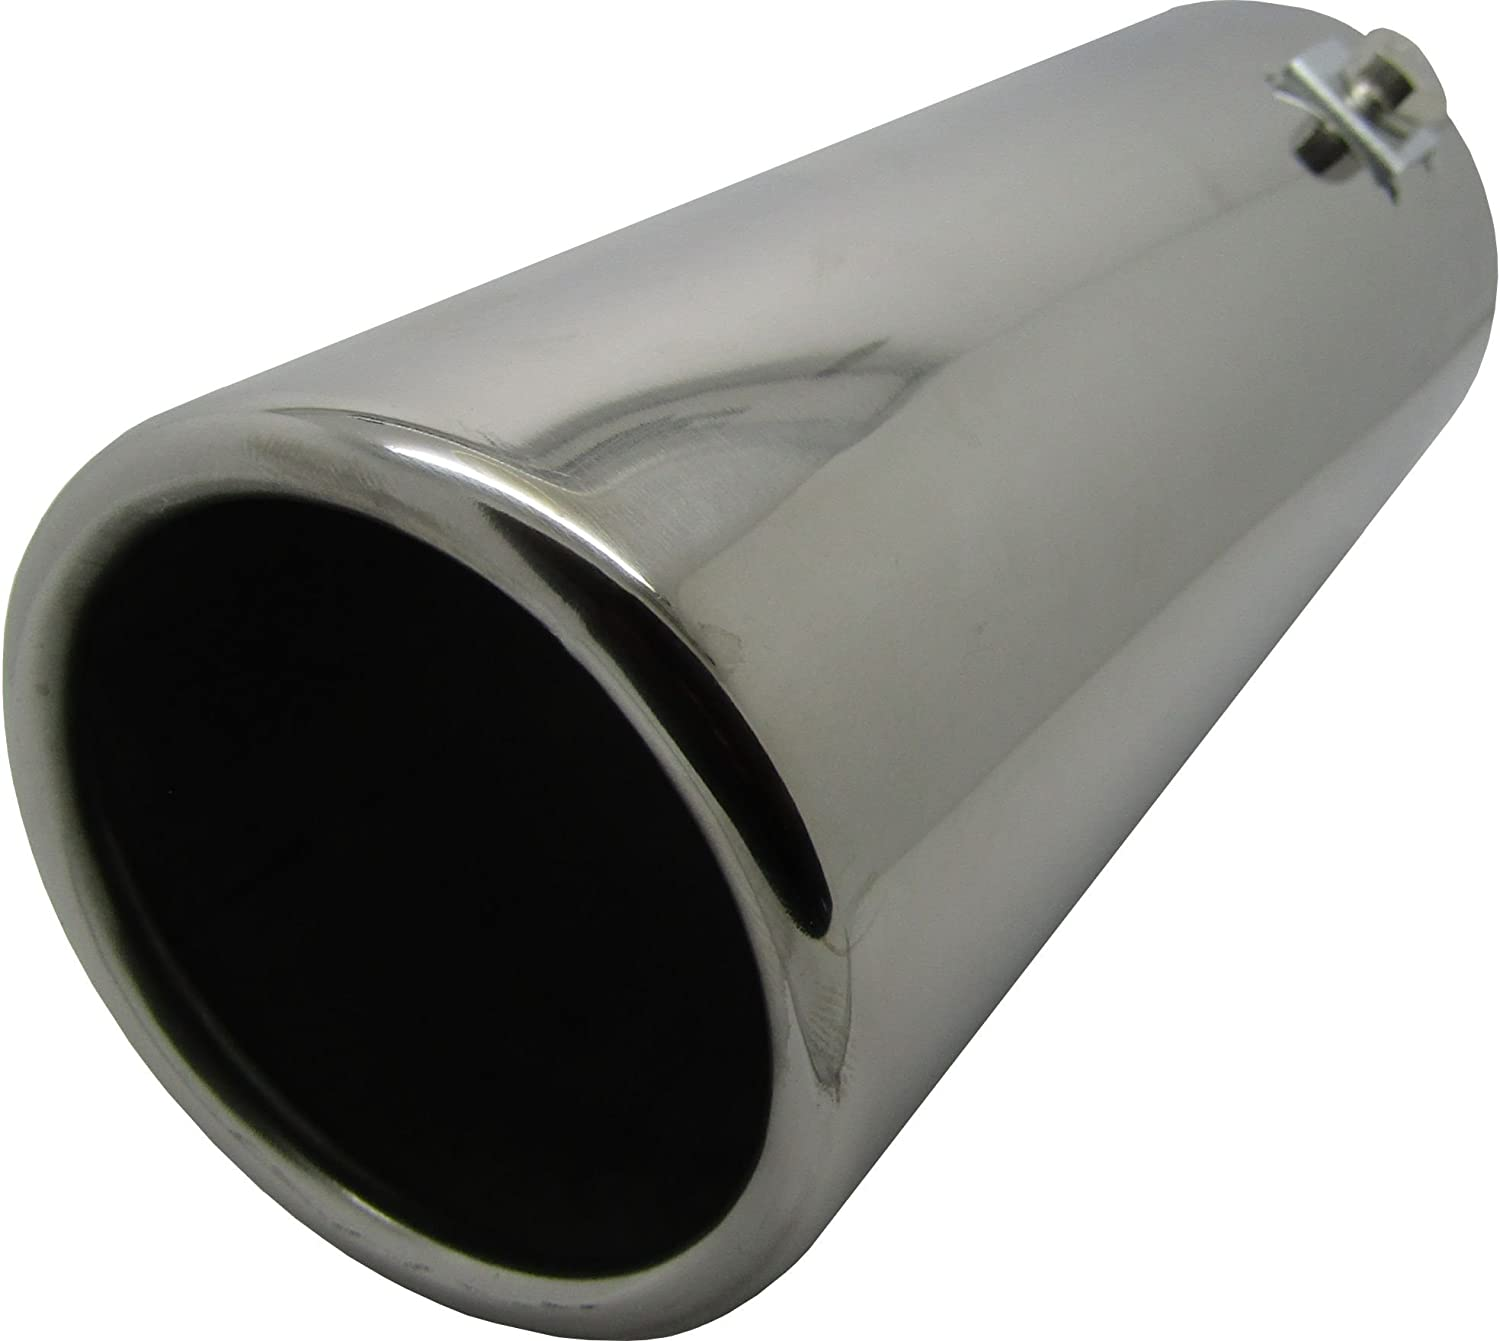 Fits 89mm XtremeAuto/® Big Bore Round Straight Exhaust Tail Pipe Bumper End Tip